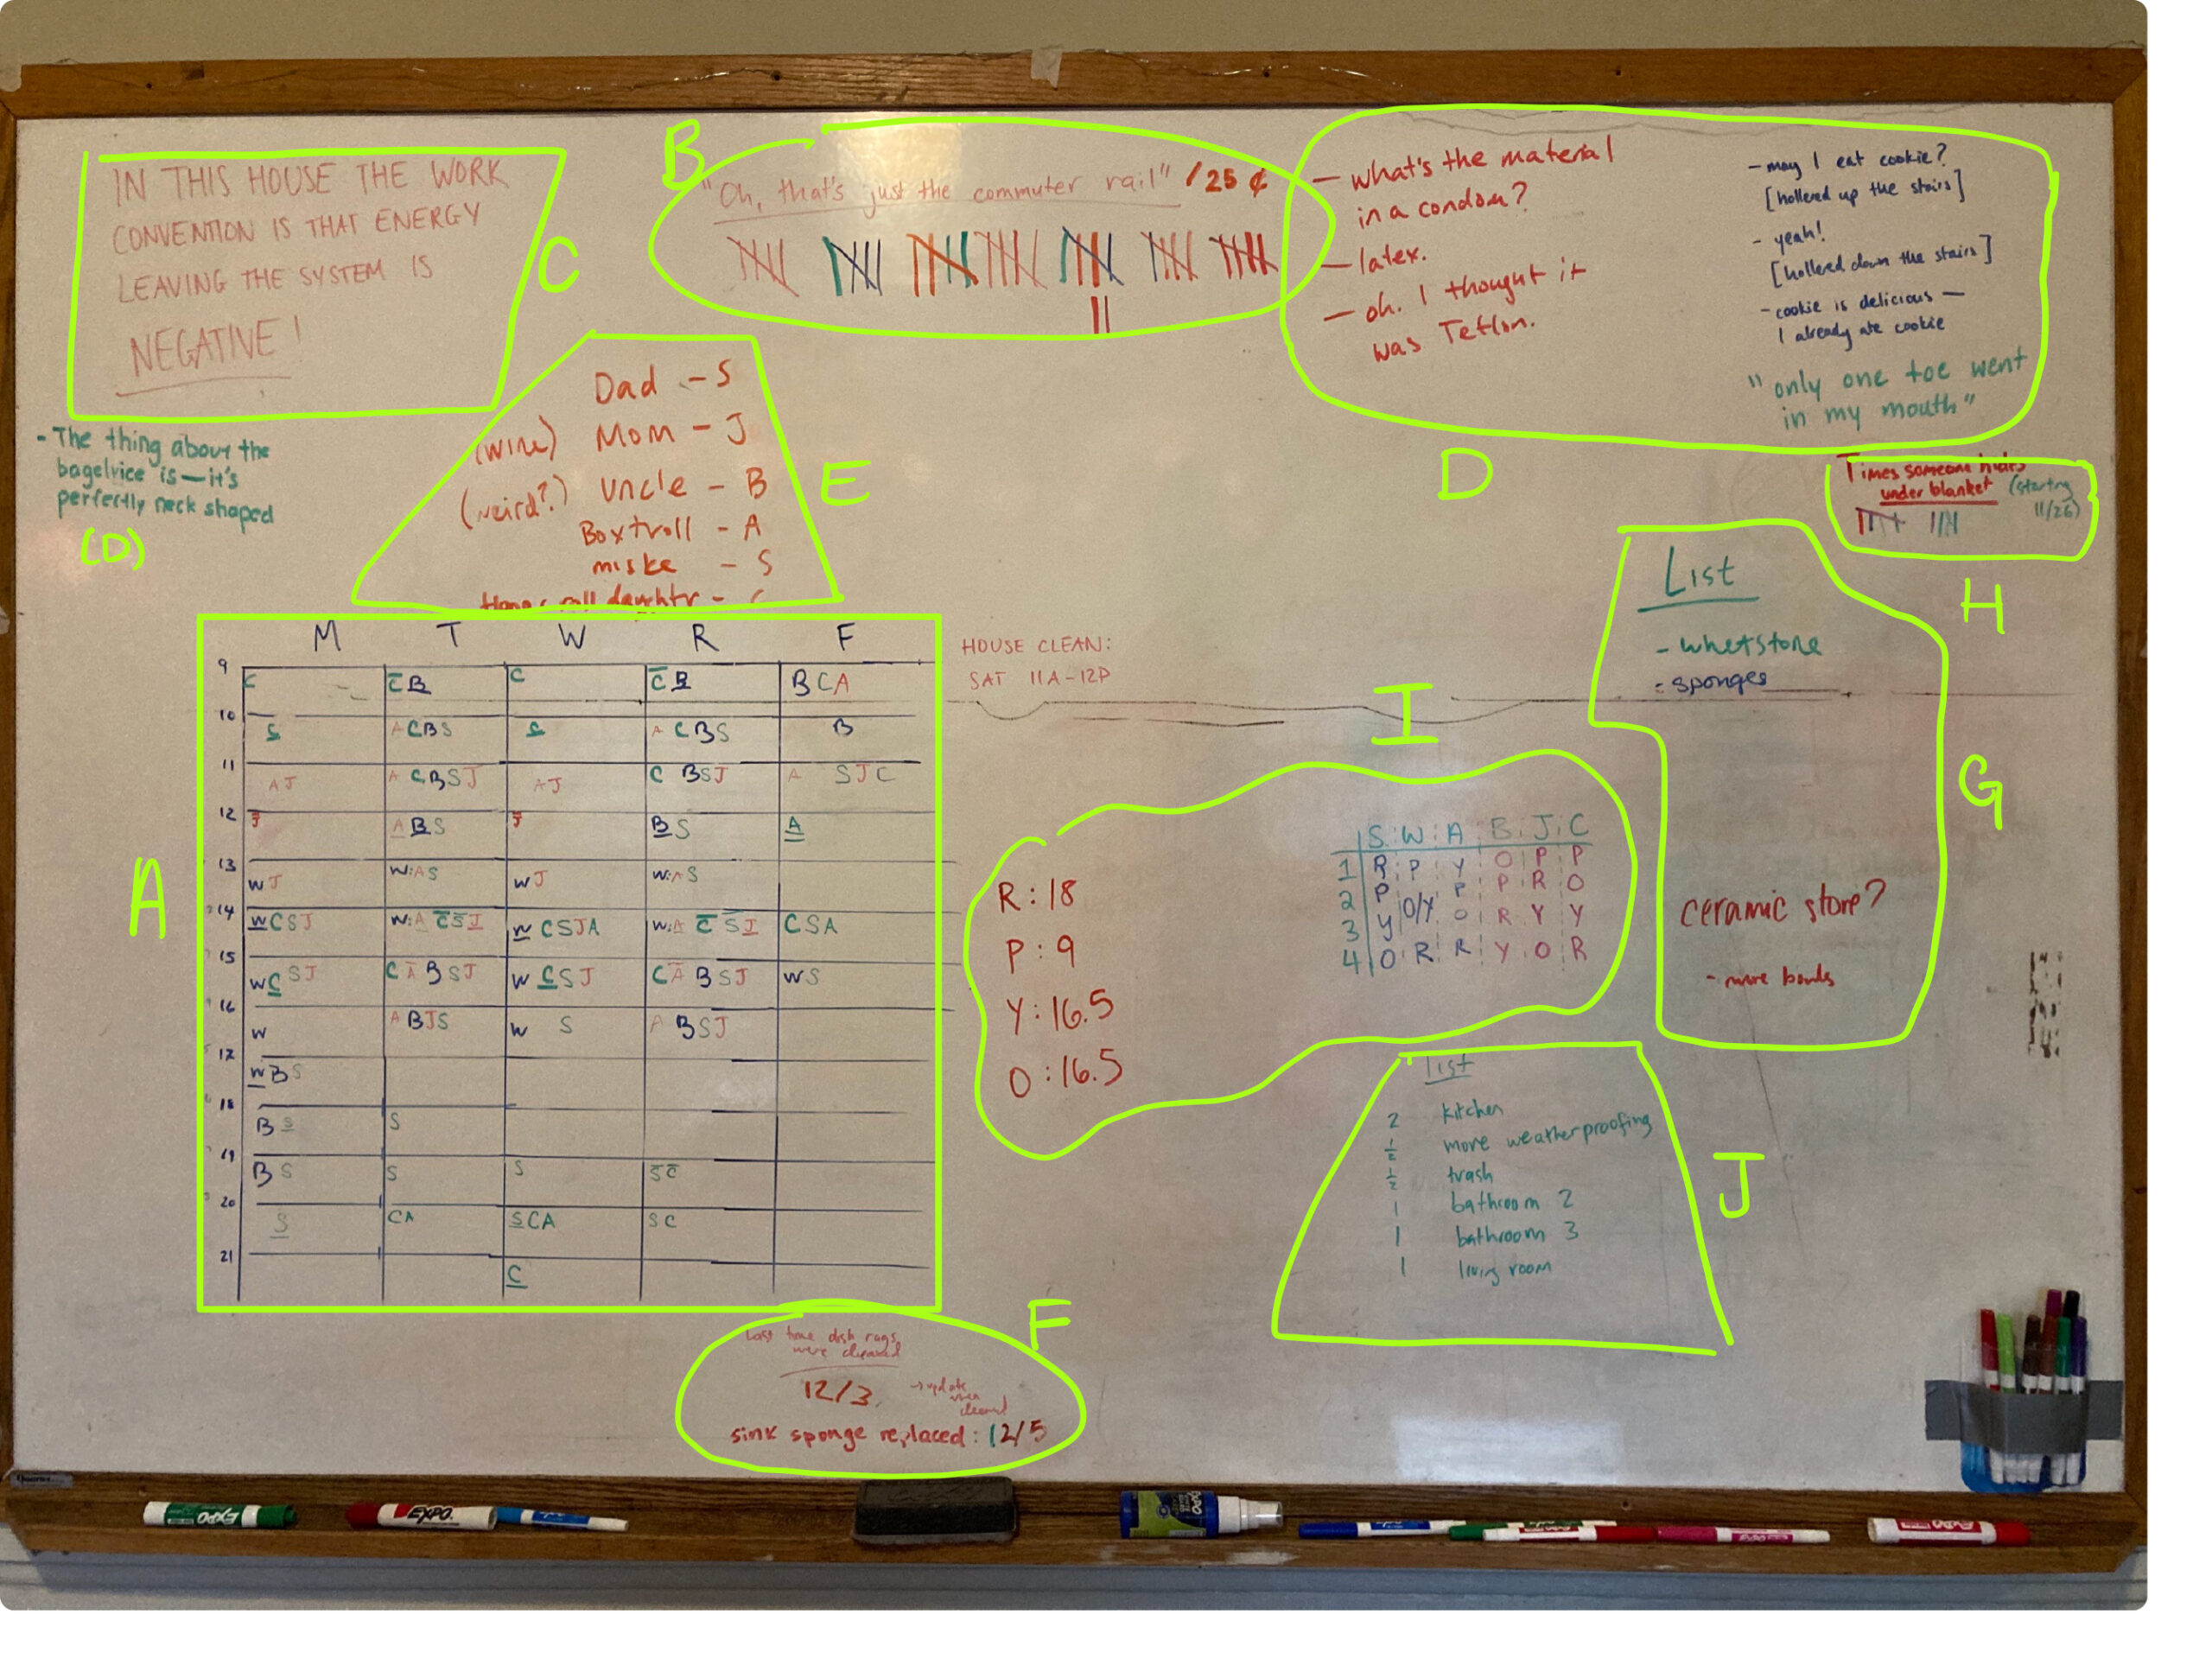 The same whiteboard as before, but different sections are circled and labelled with letters.